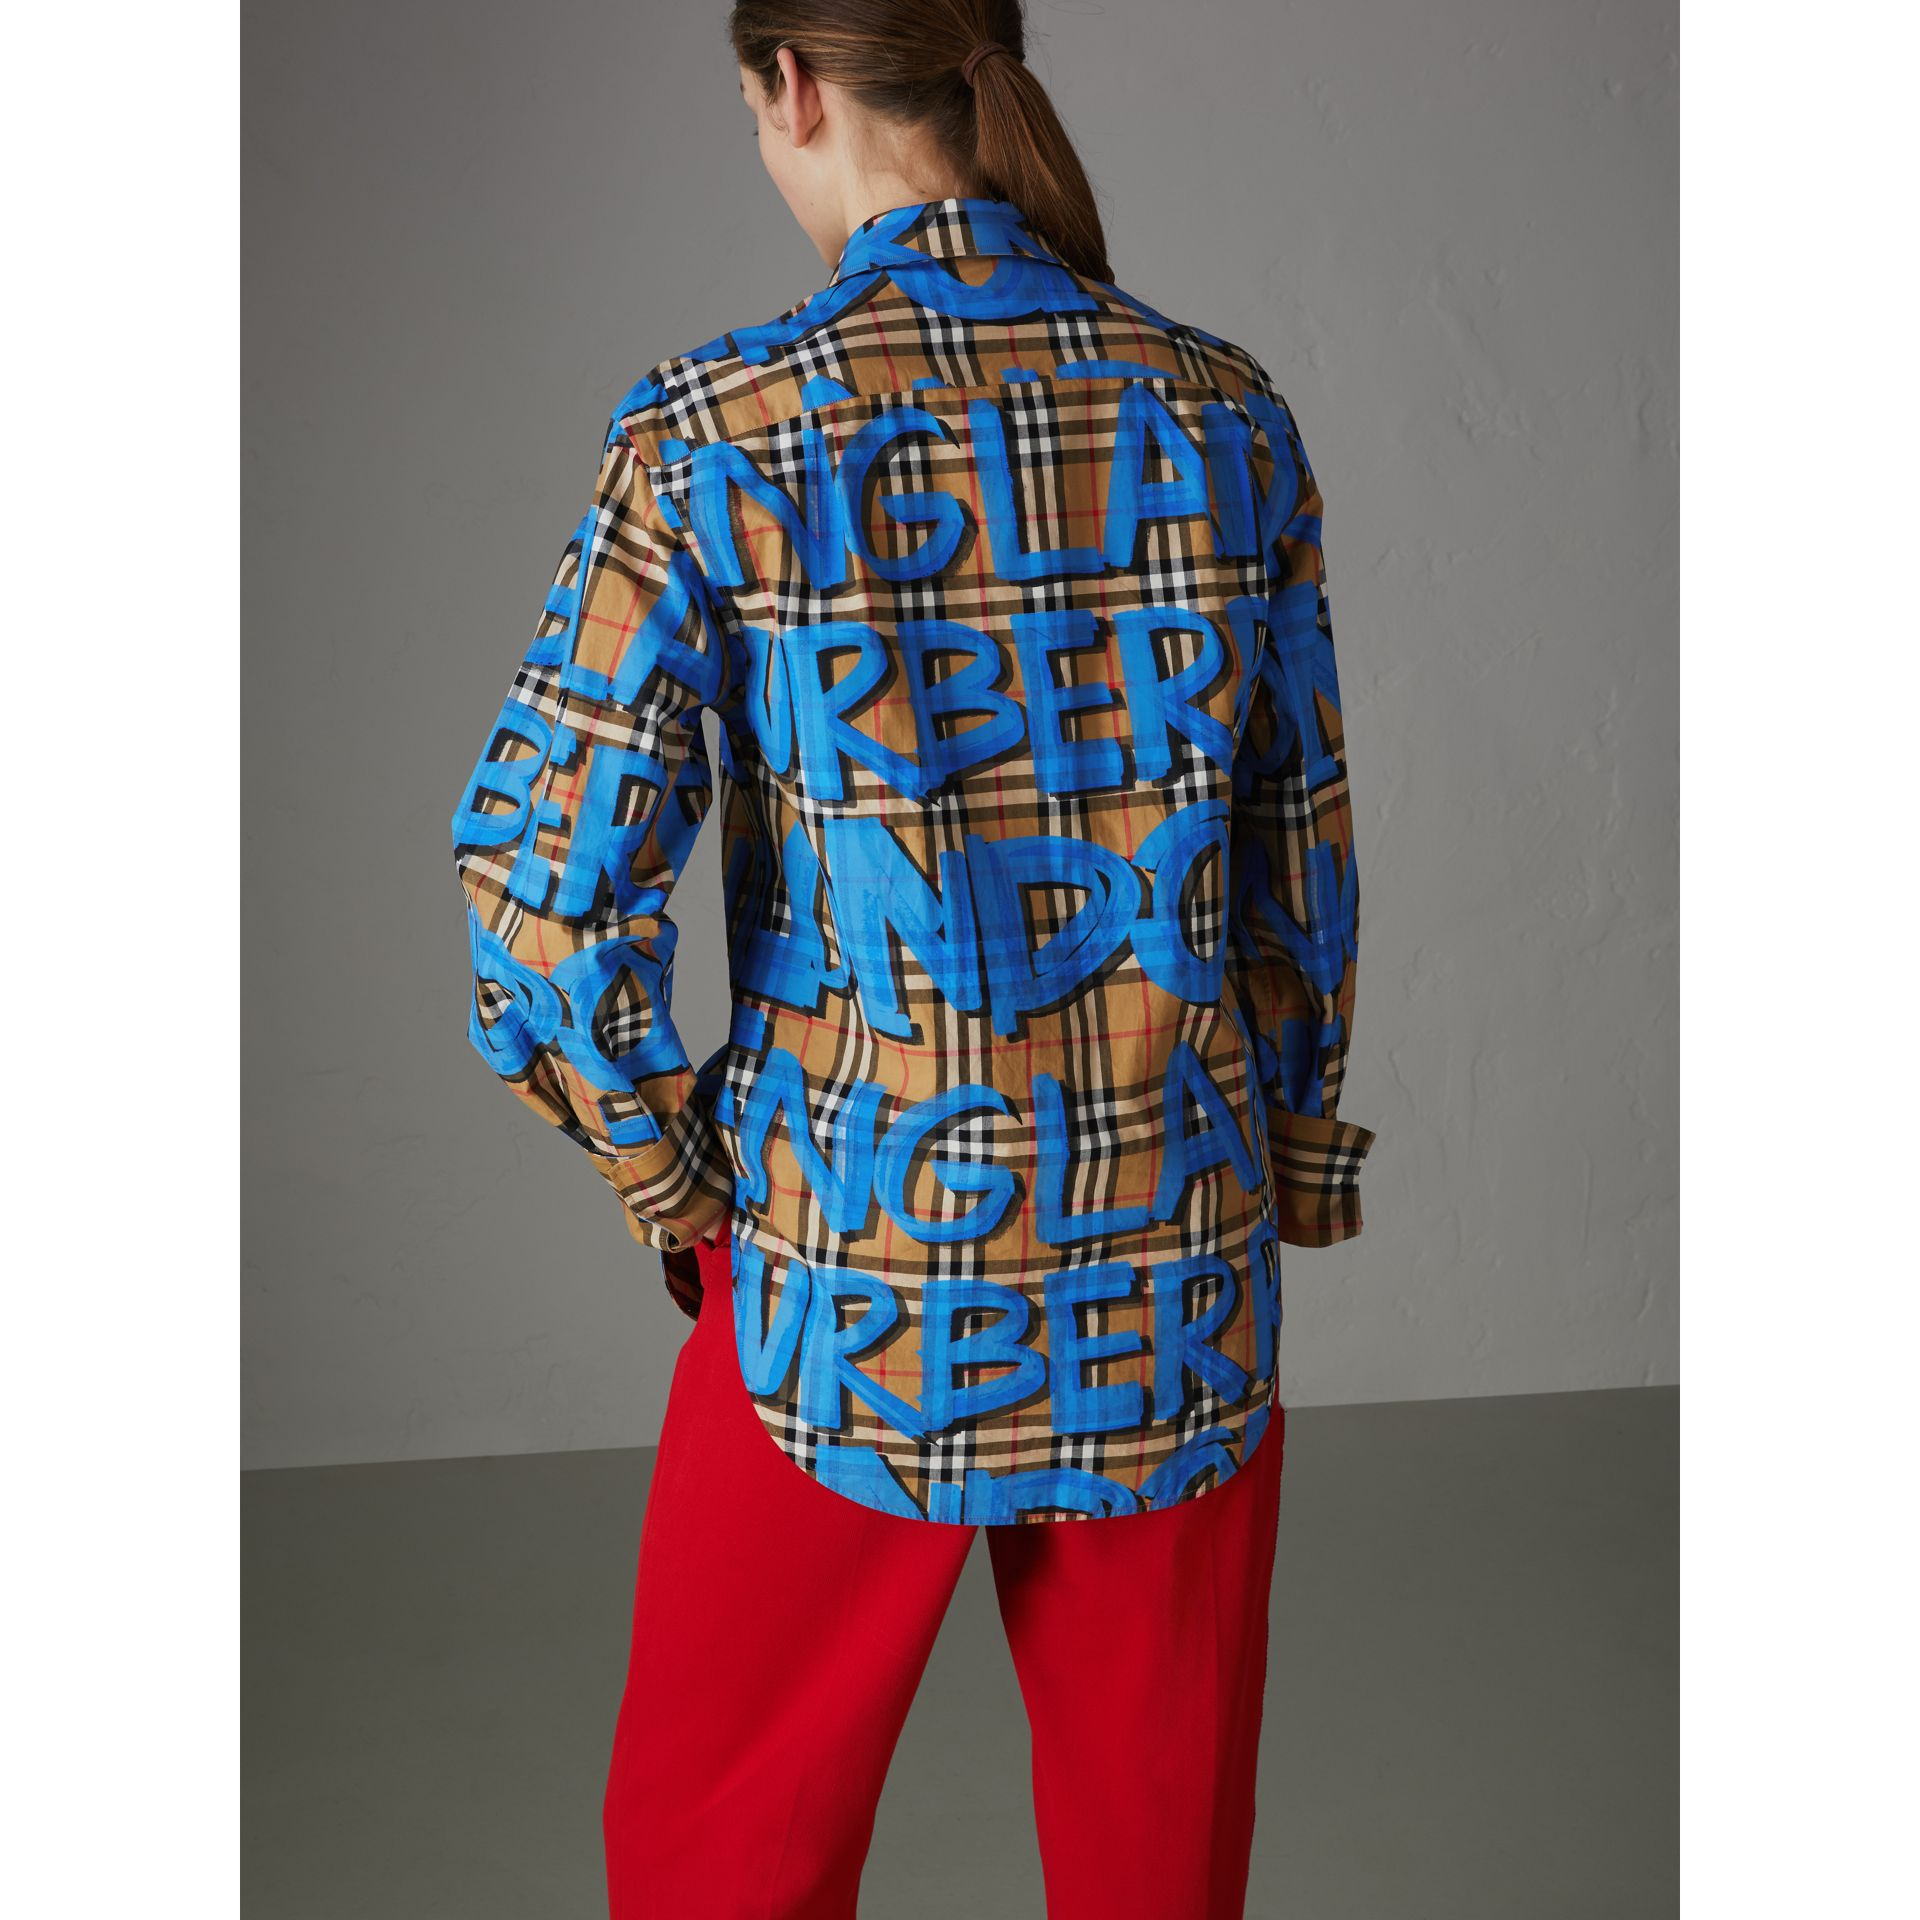 Graffiti Print Vintage Check Cotton Shirt in Bright Blue - Women | Burberry United Kingdom - gallery image 2